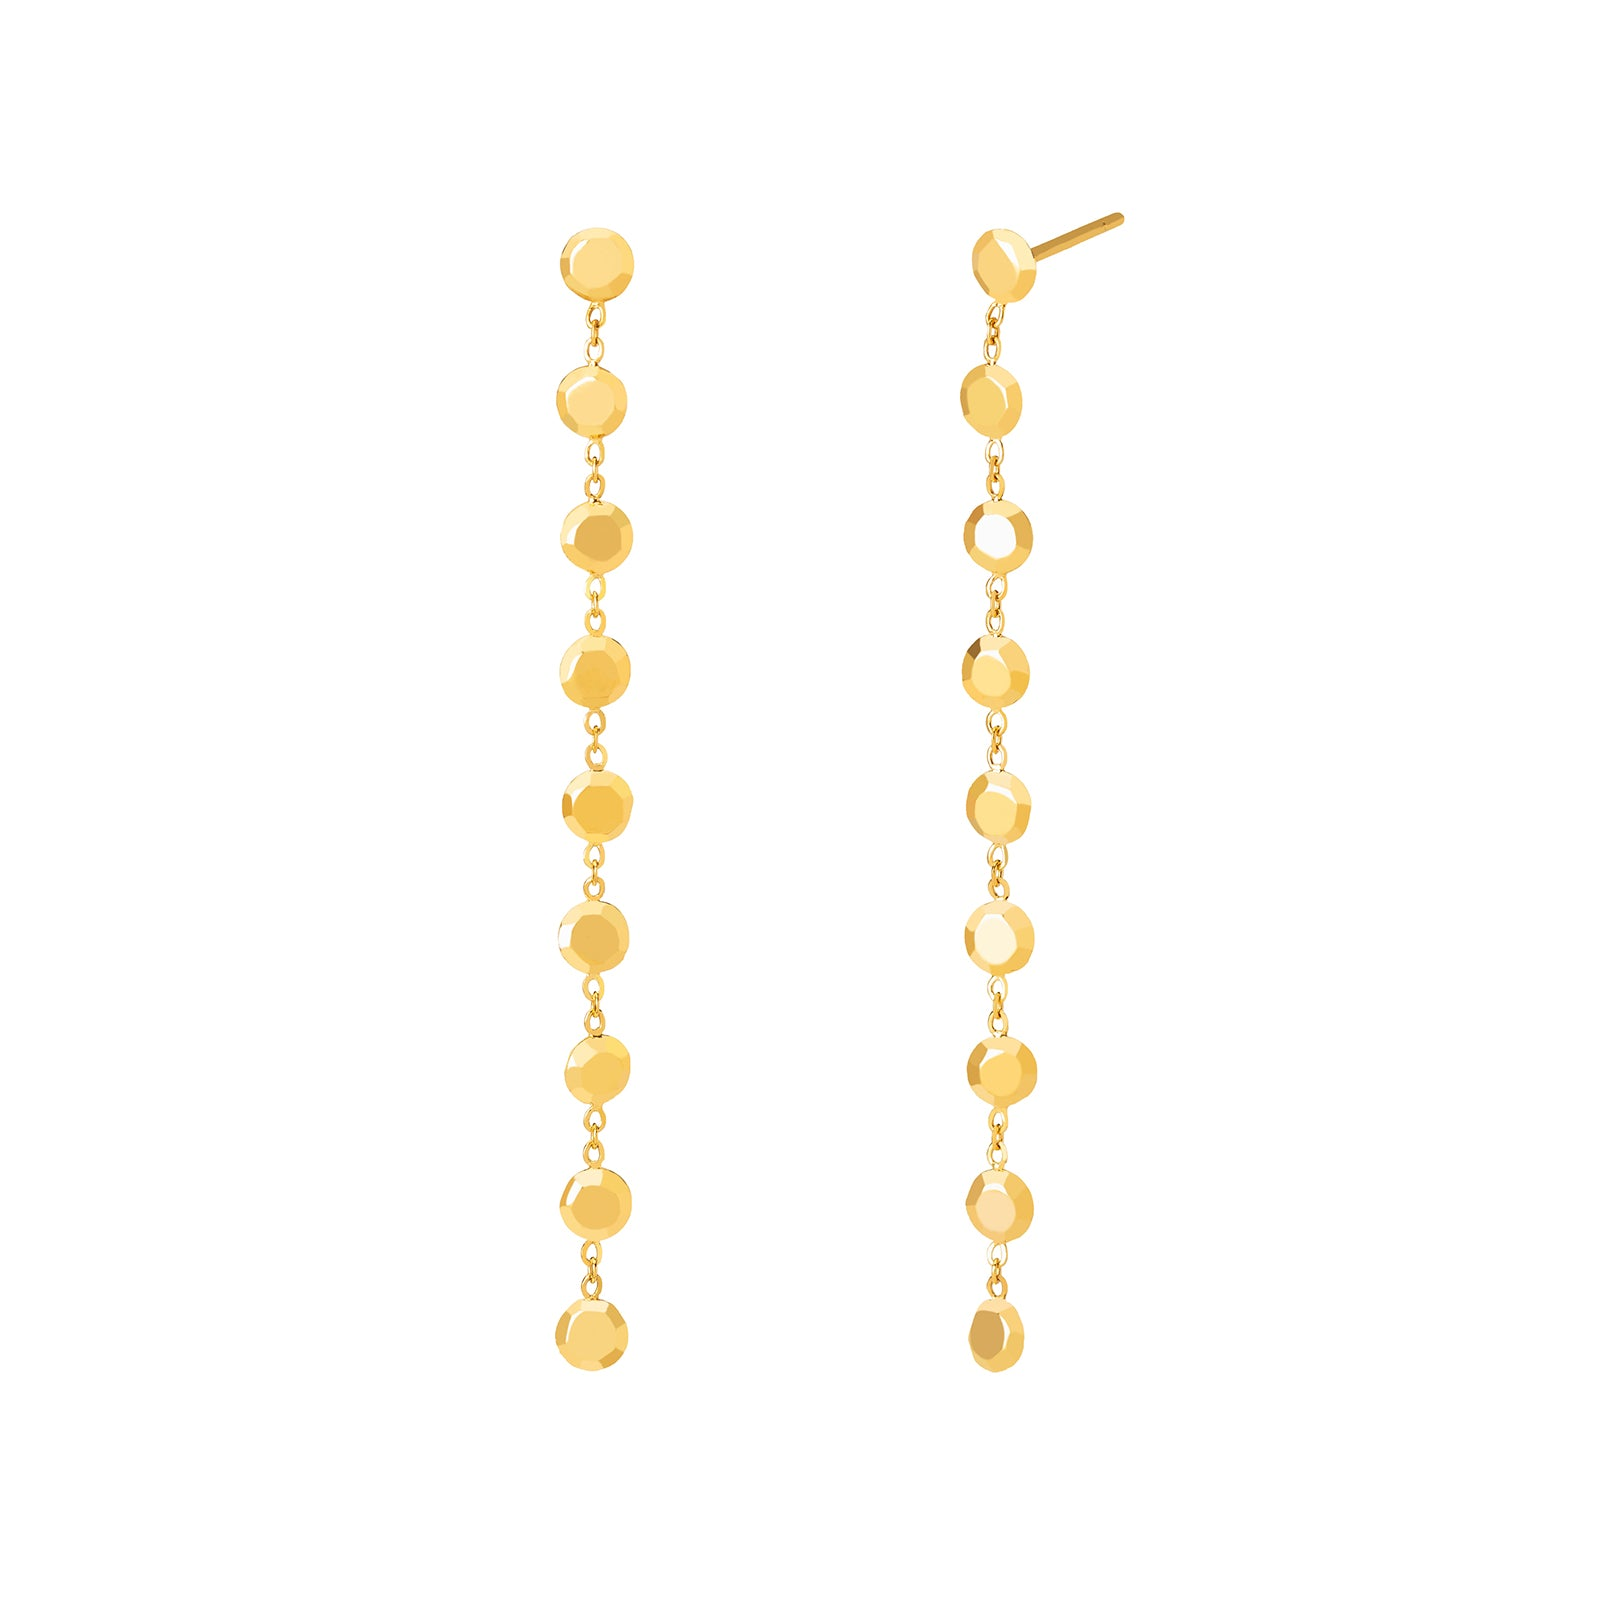 Patcharavipa Sepper Earrings - Earrings - Broken English Jewelry